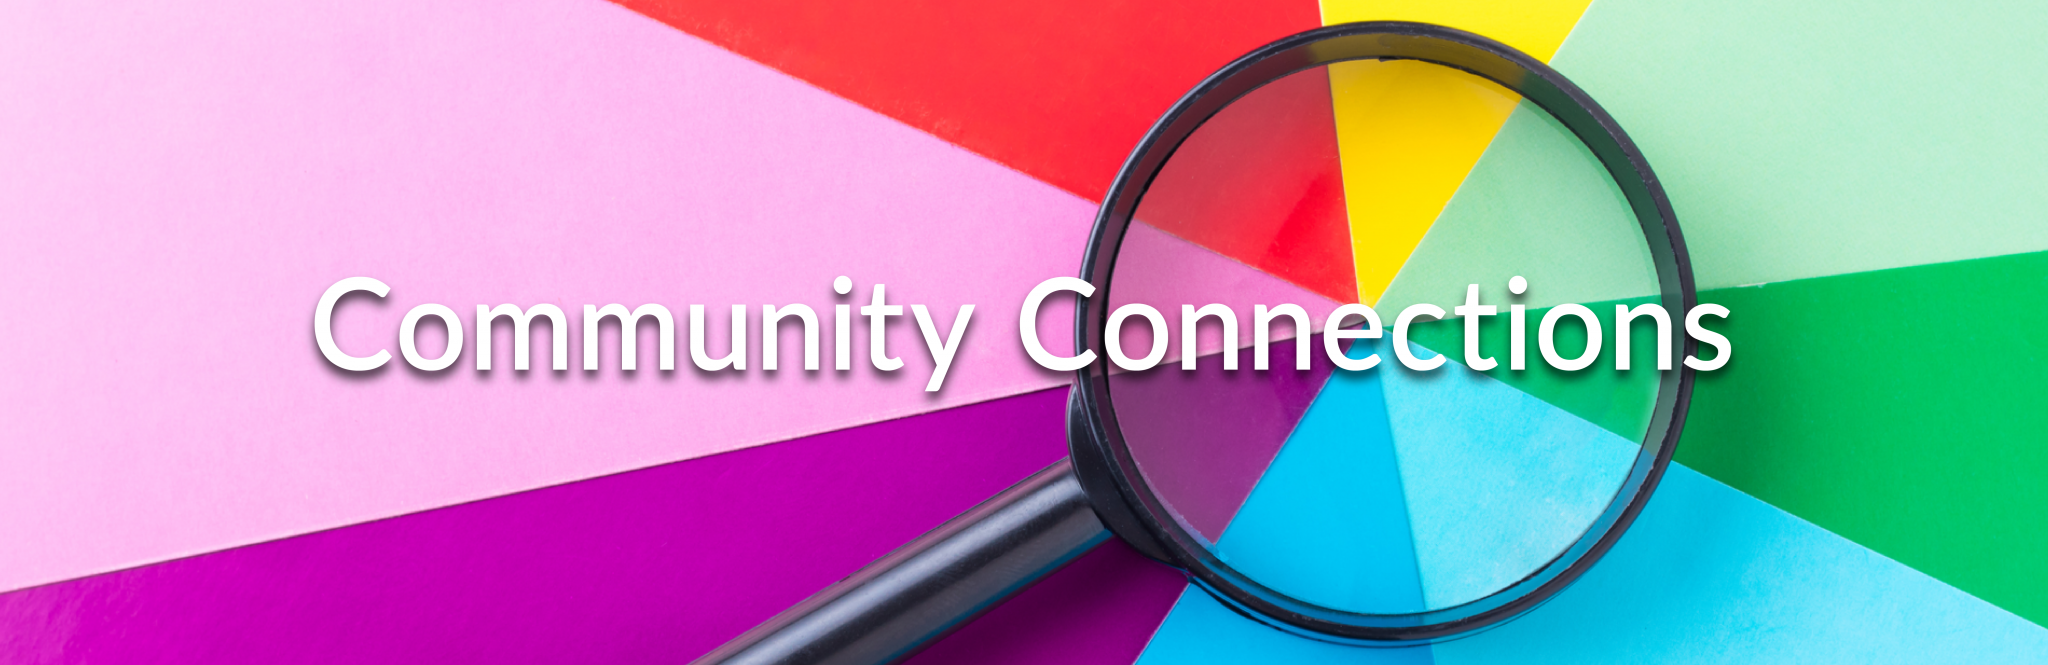 2020-08-CC-Website-Header-Community Connections-01